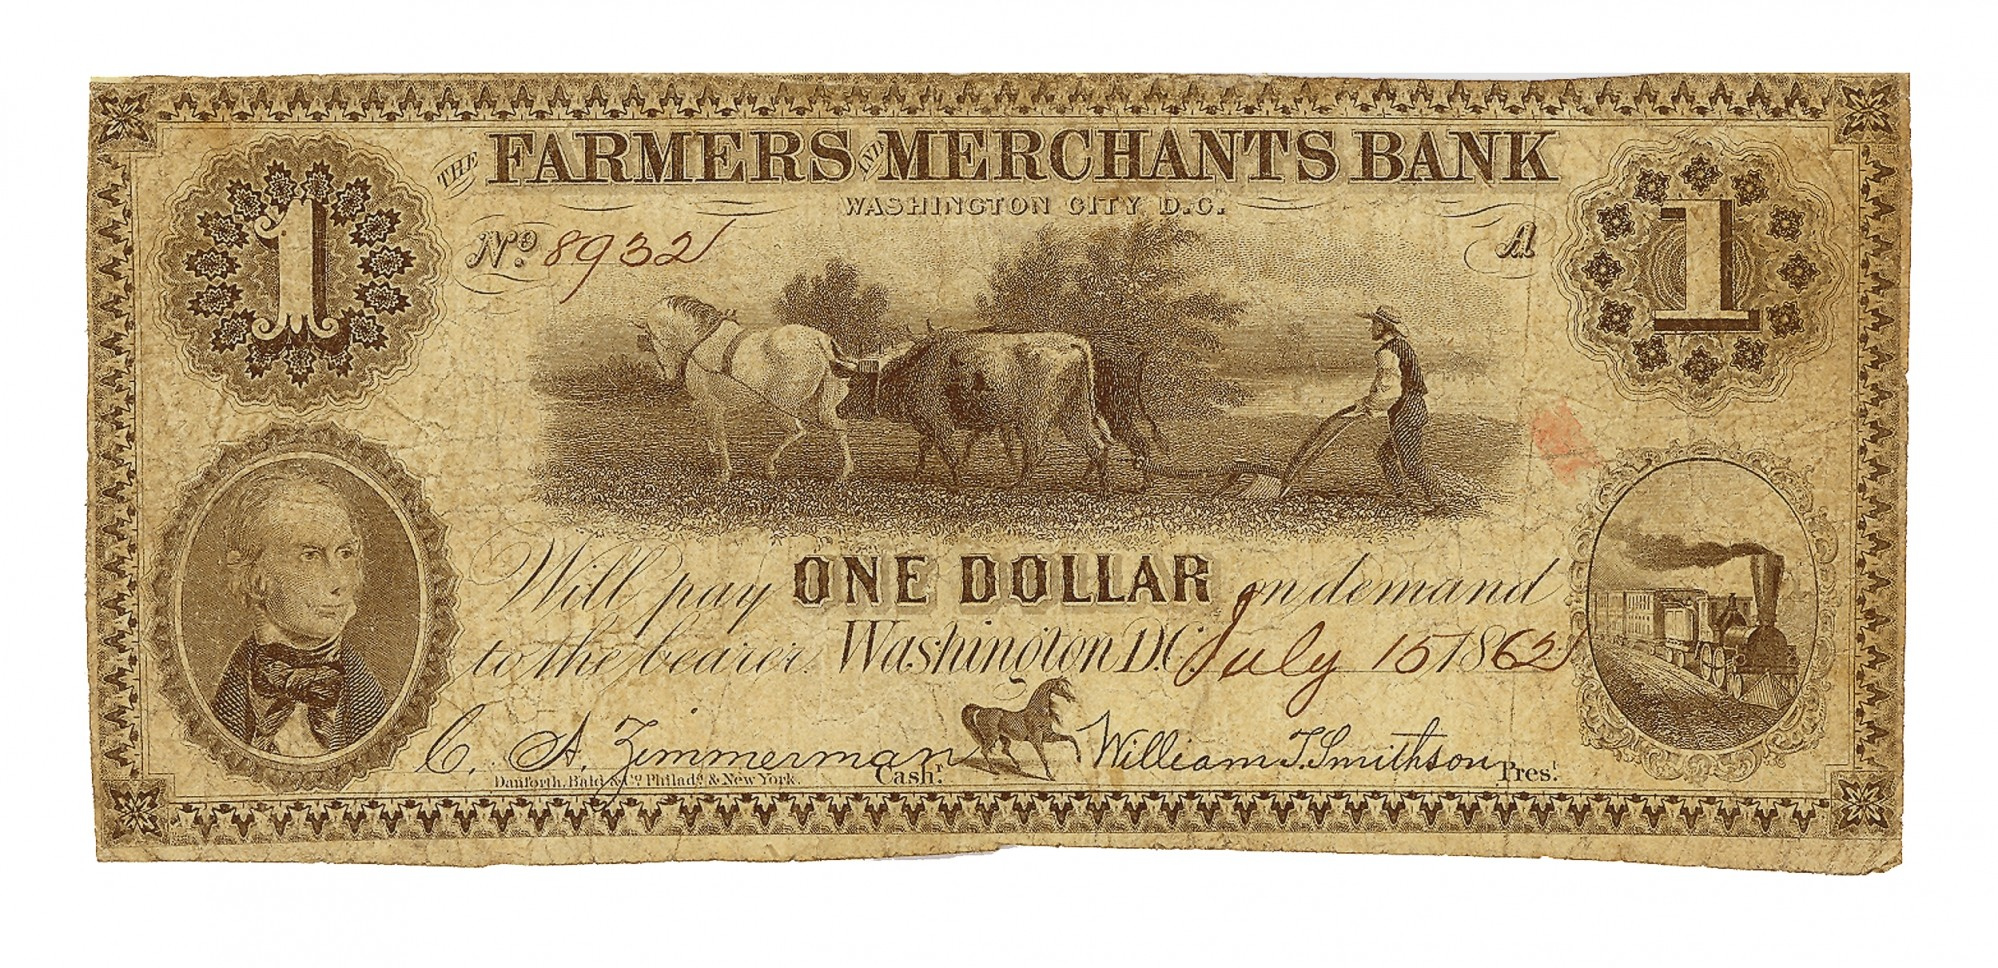 THE FARMERS AND MERCHANTS BANK, WASHINGTON D.C. $1 NOTE